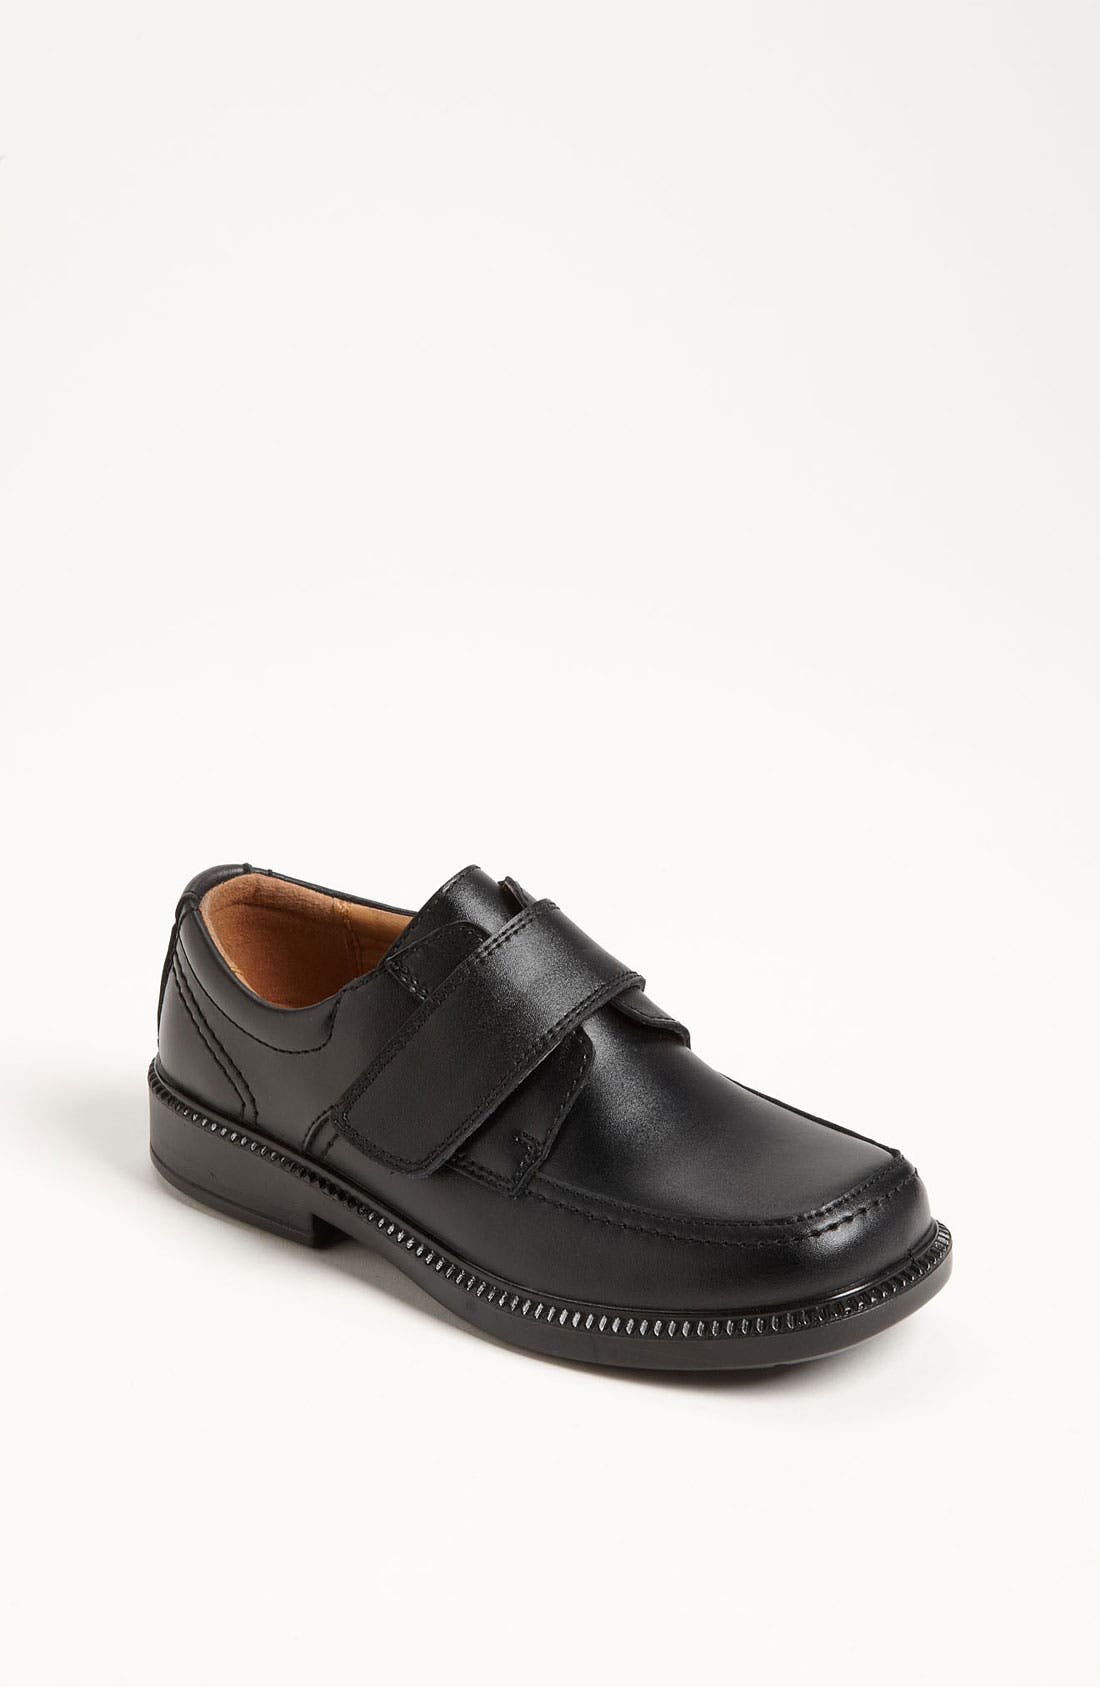 Alternate Image 1 Selected - Florsheim 'Berwyn' Slip-On (Toddler, Little Kid & Big Kid)